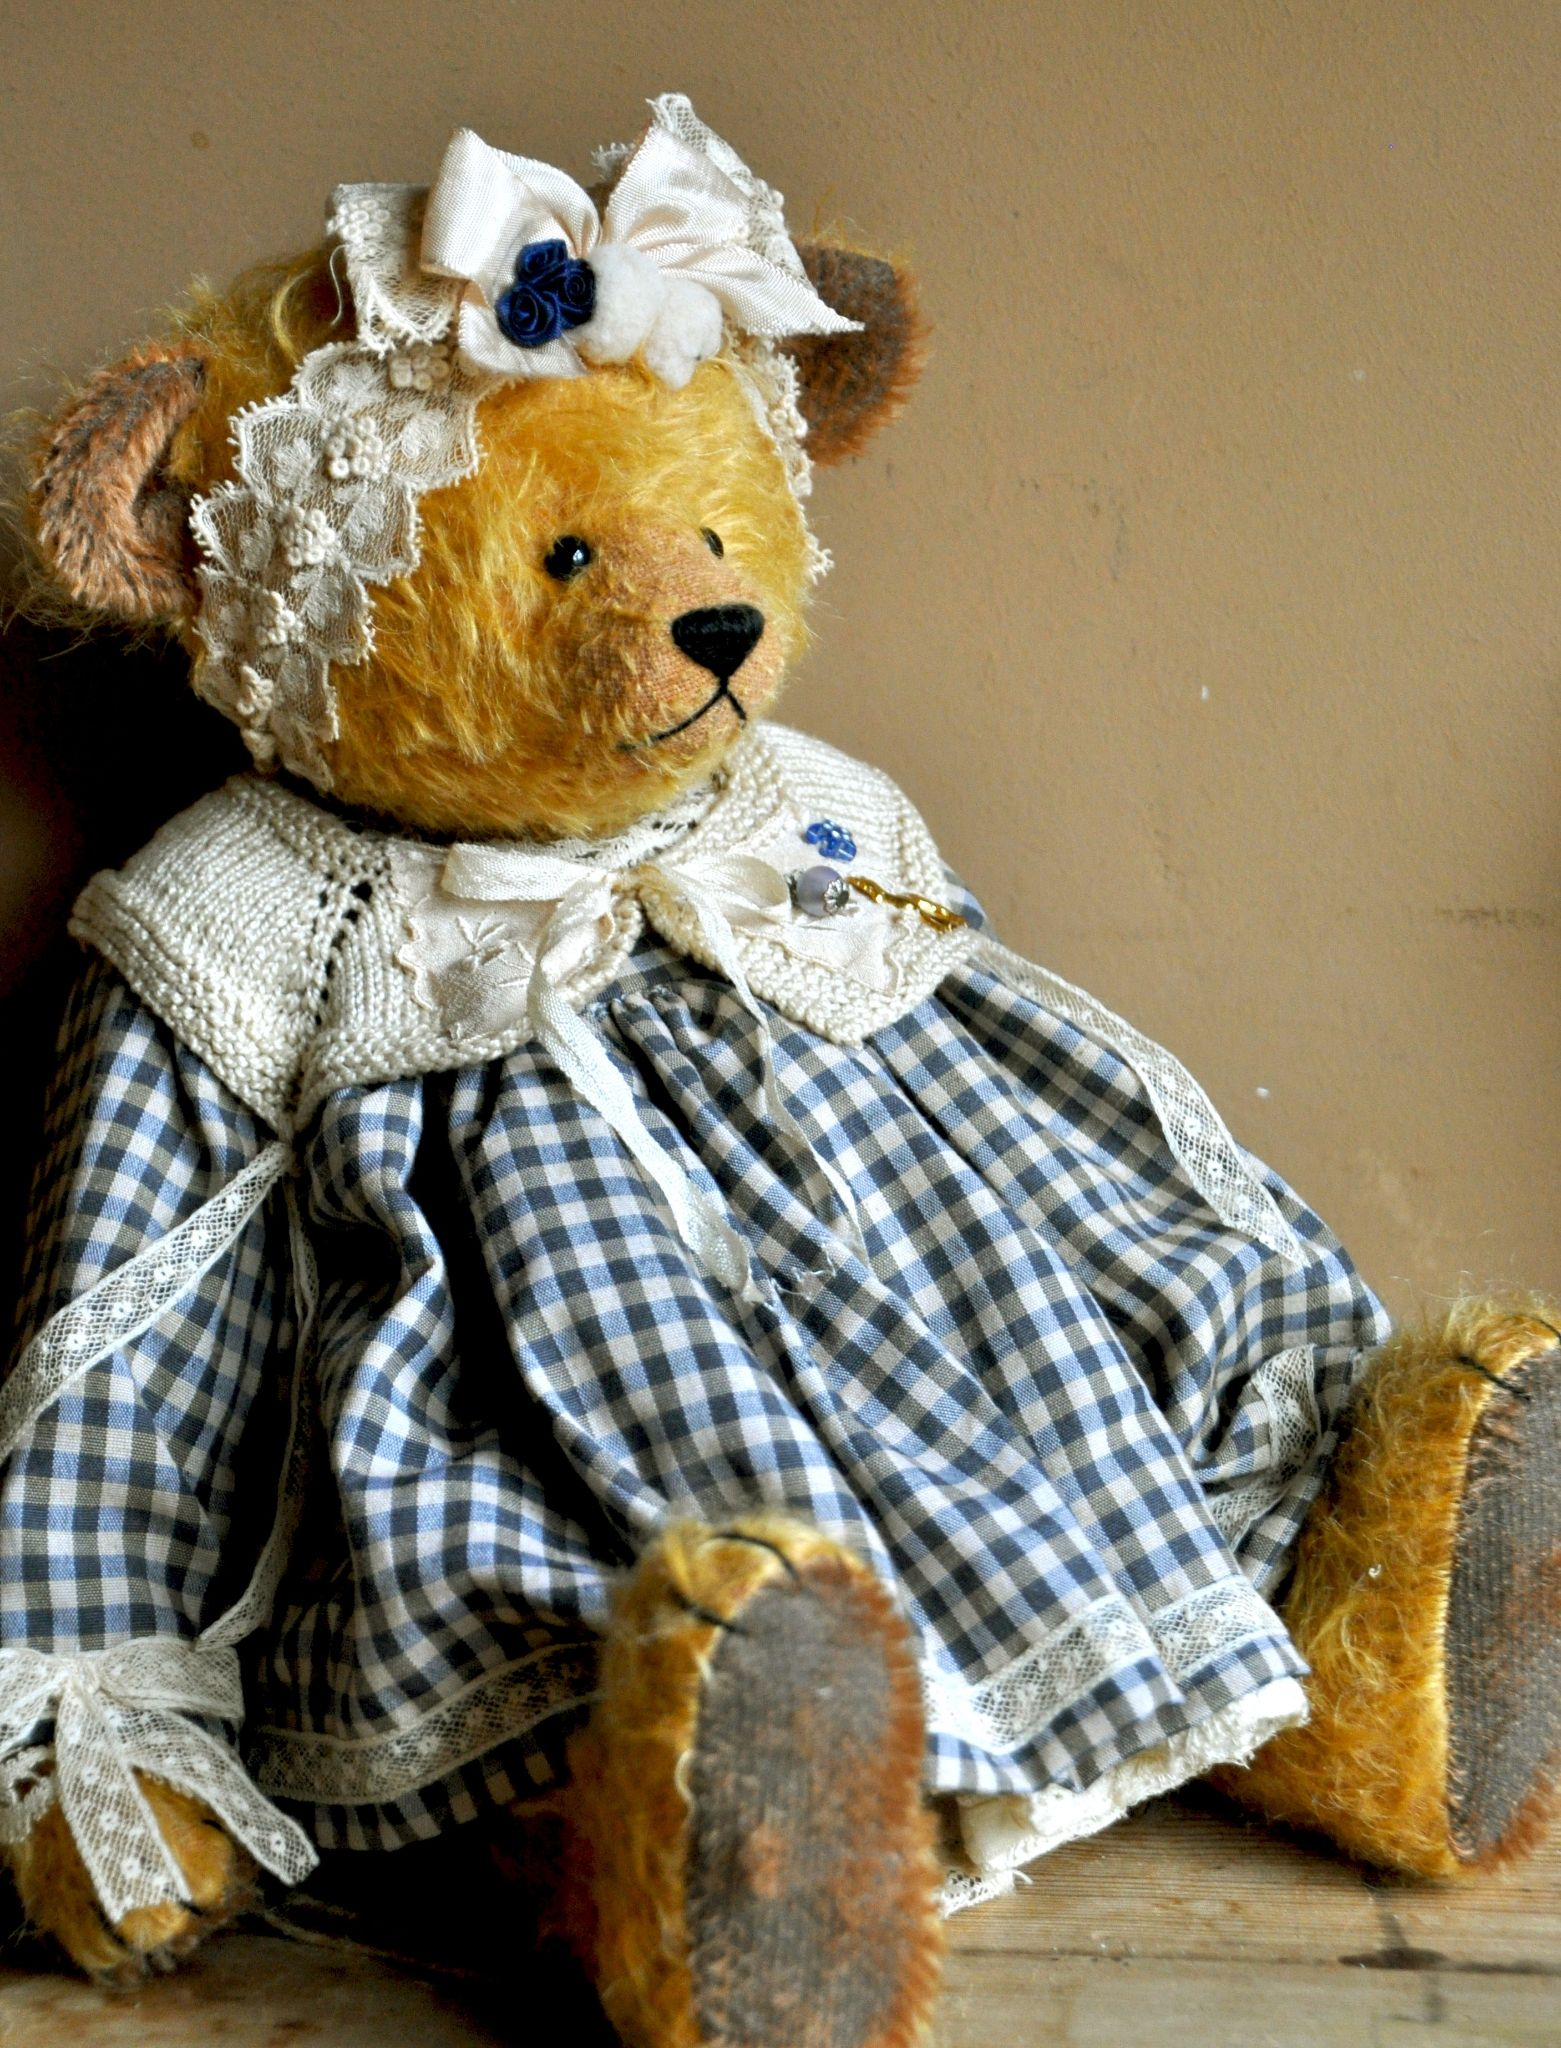 Beautiful Bear In Gingham Dress.